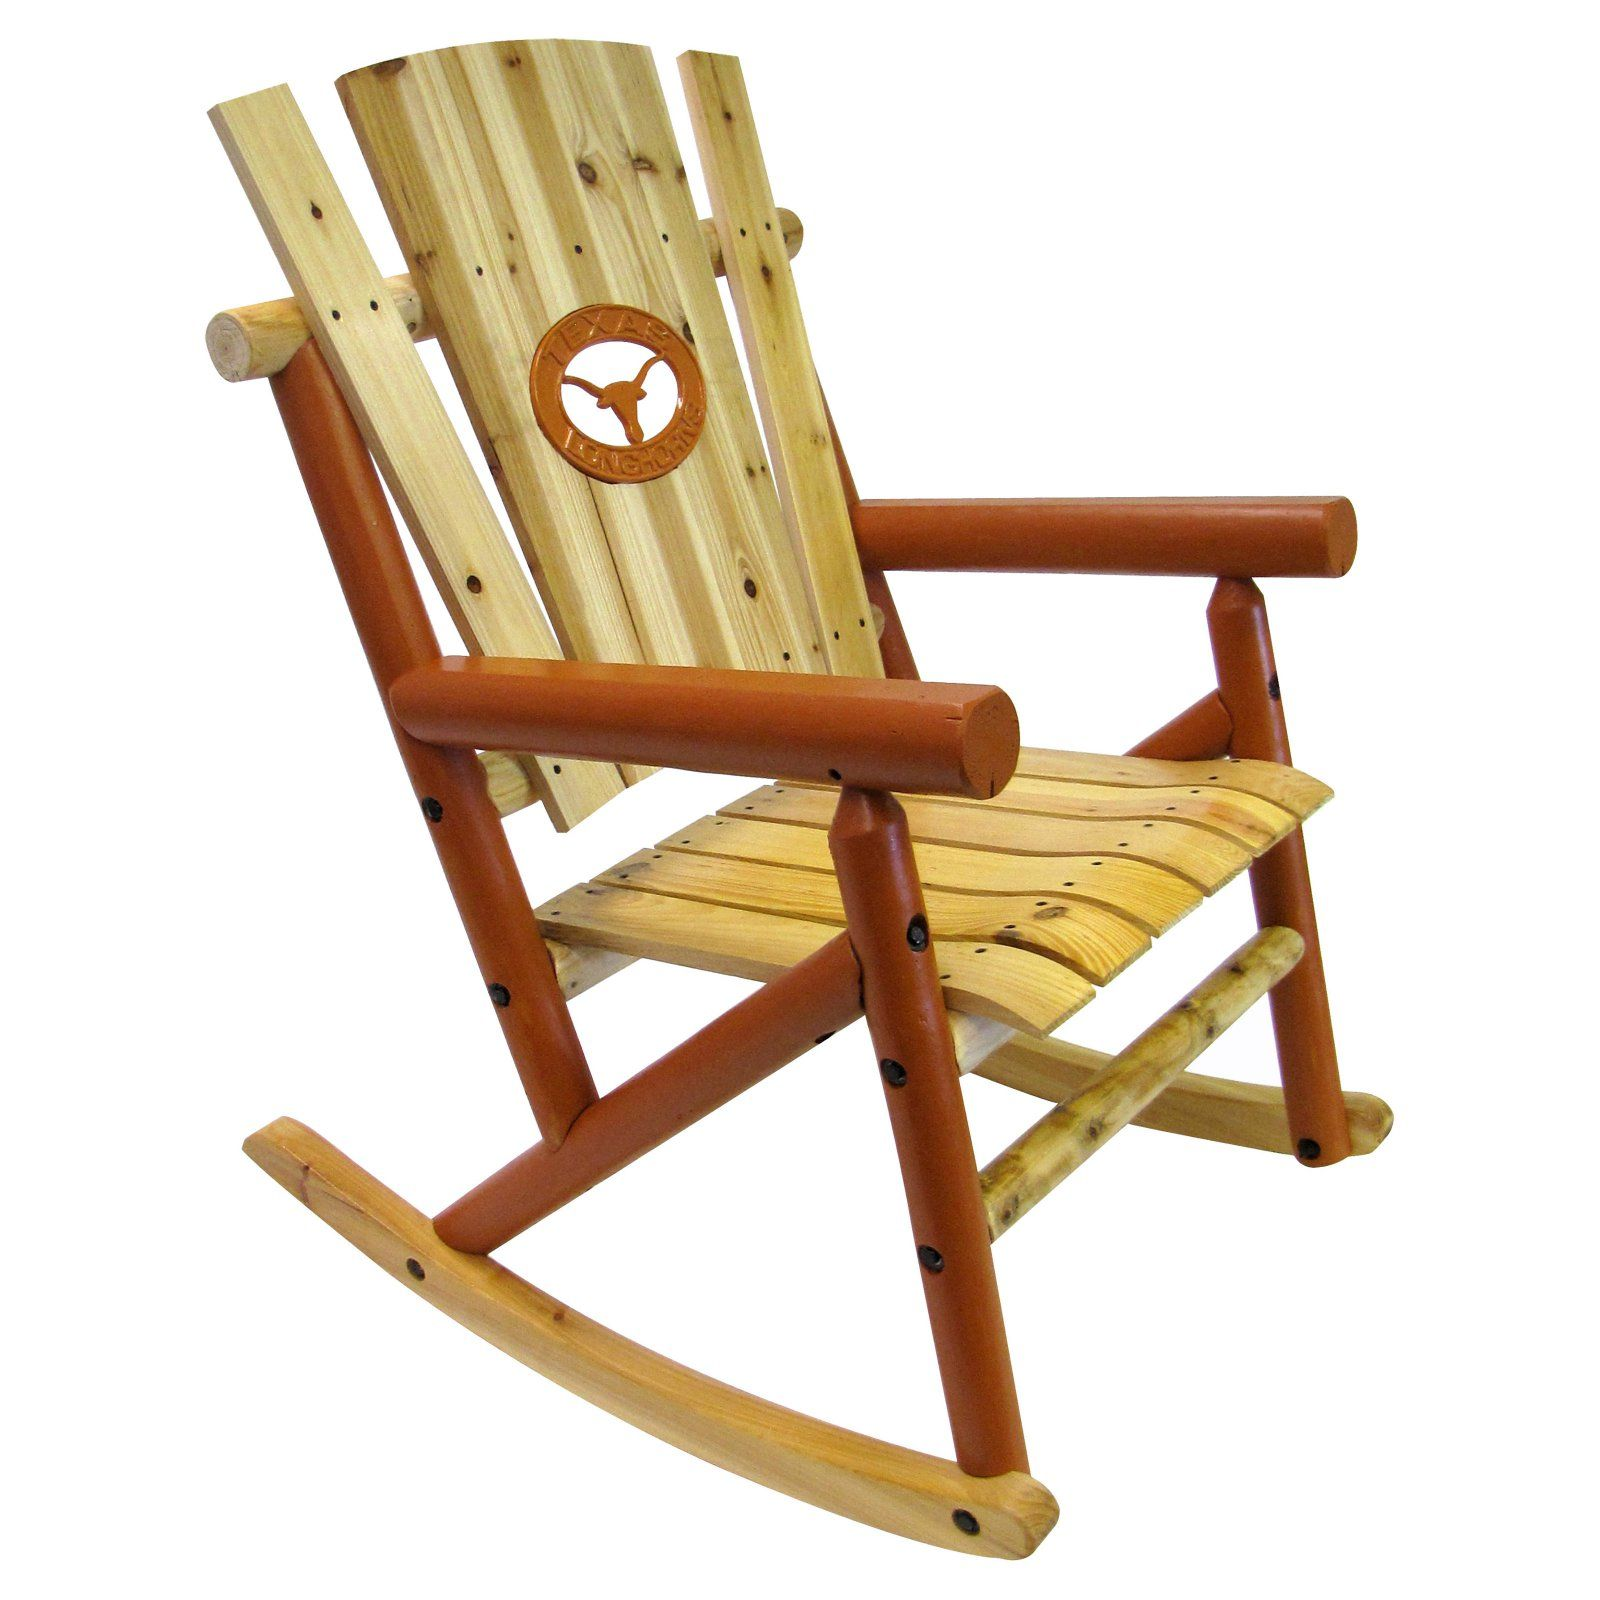 Prime Outdoor Leigh Country Texas Collegiate Aspen Series Slat Unemploymentrelief Wooden Chair Designs For Living Room Unemploymentrelieforg